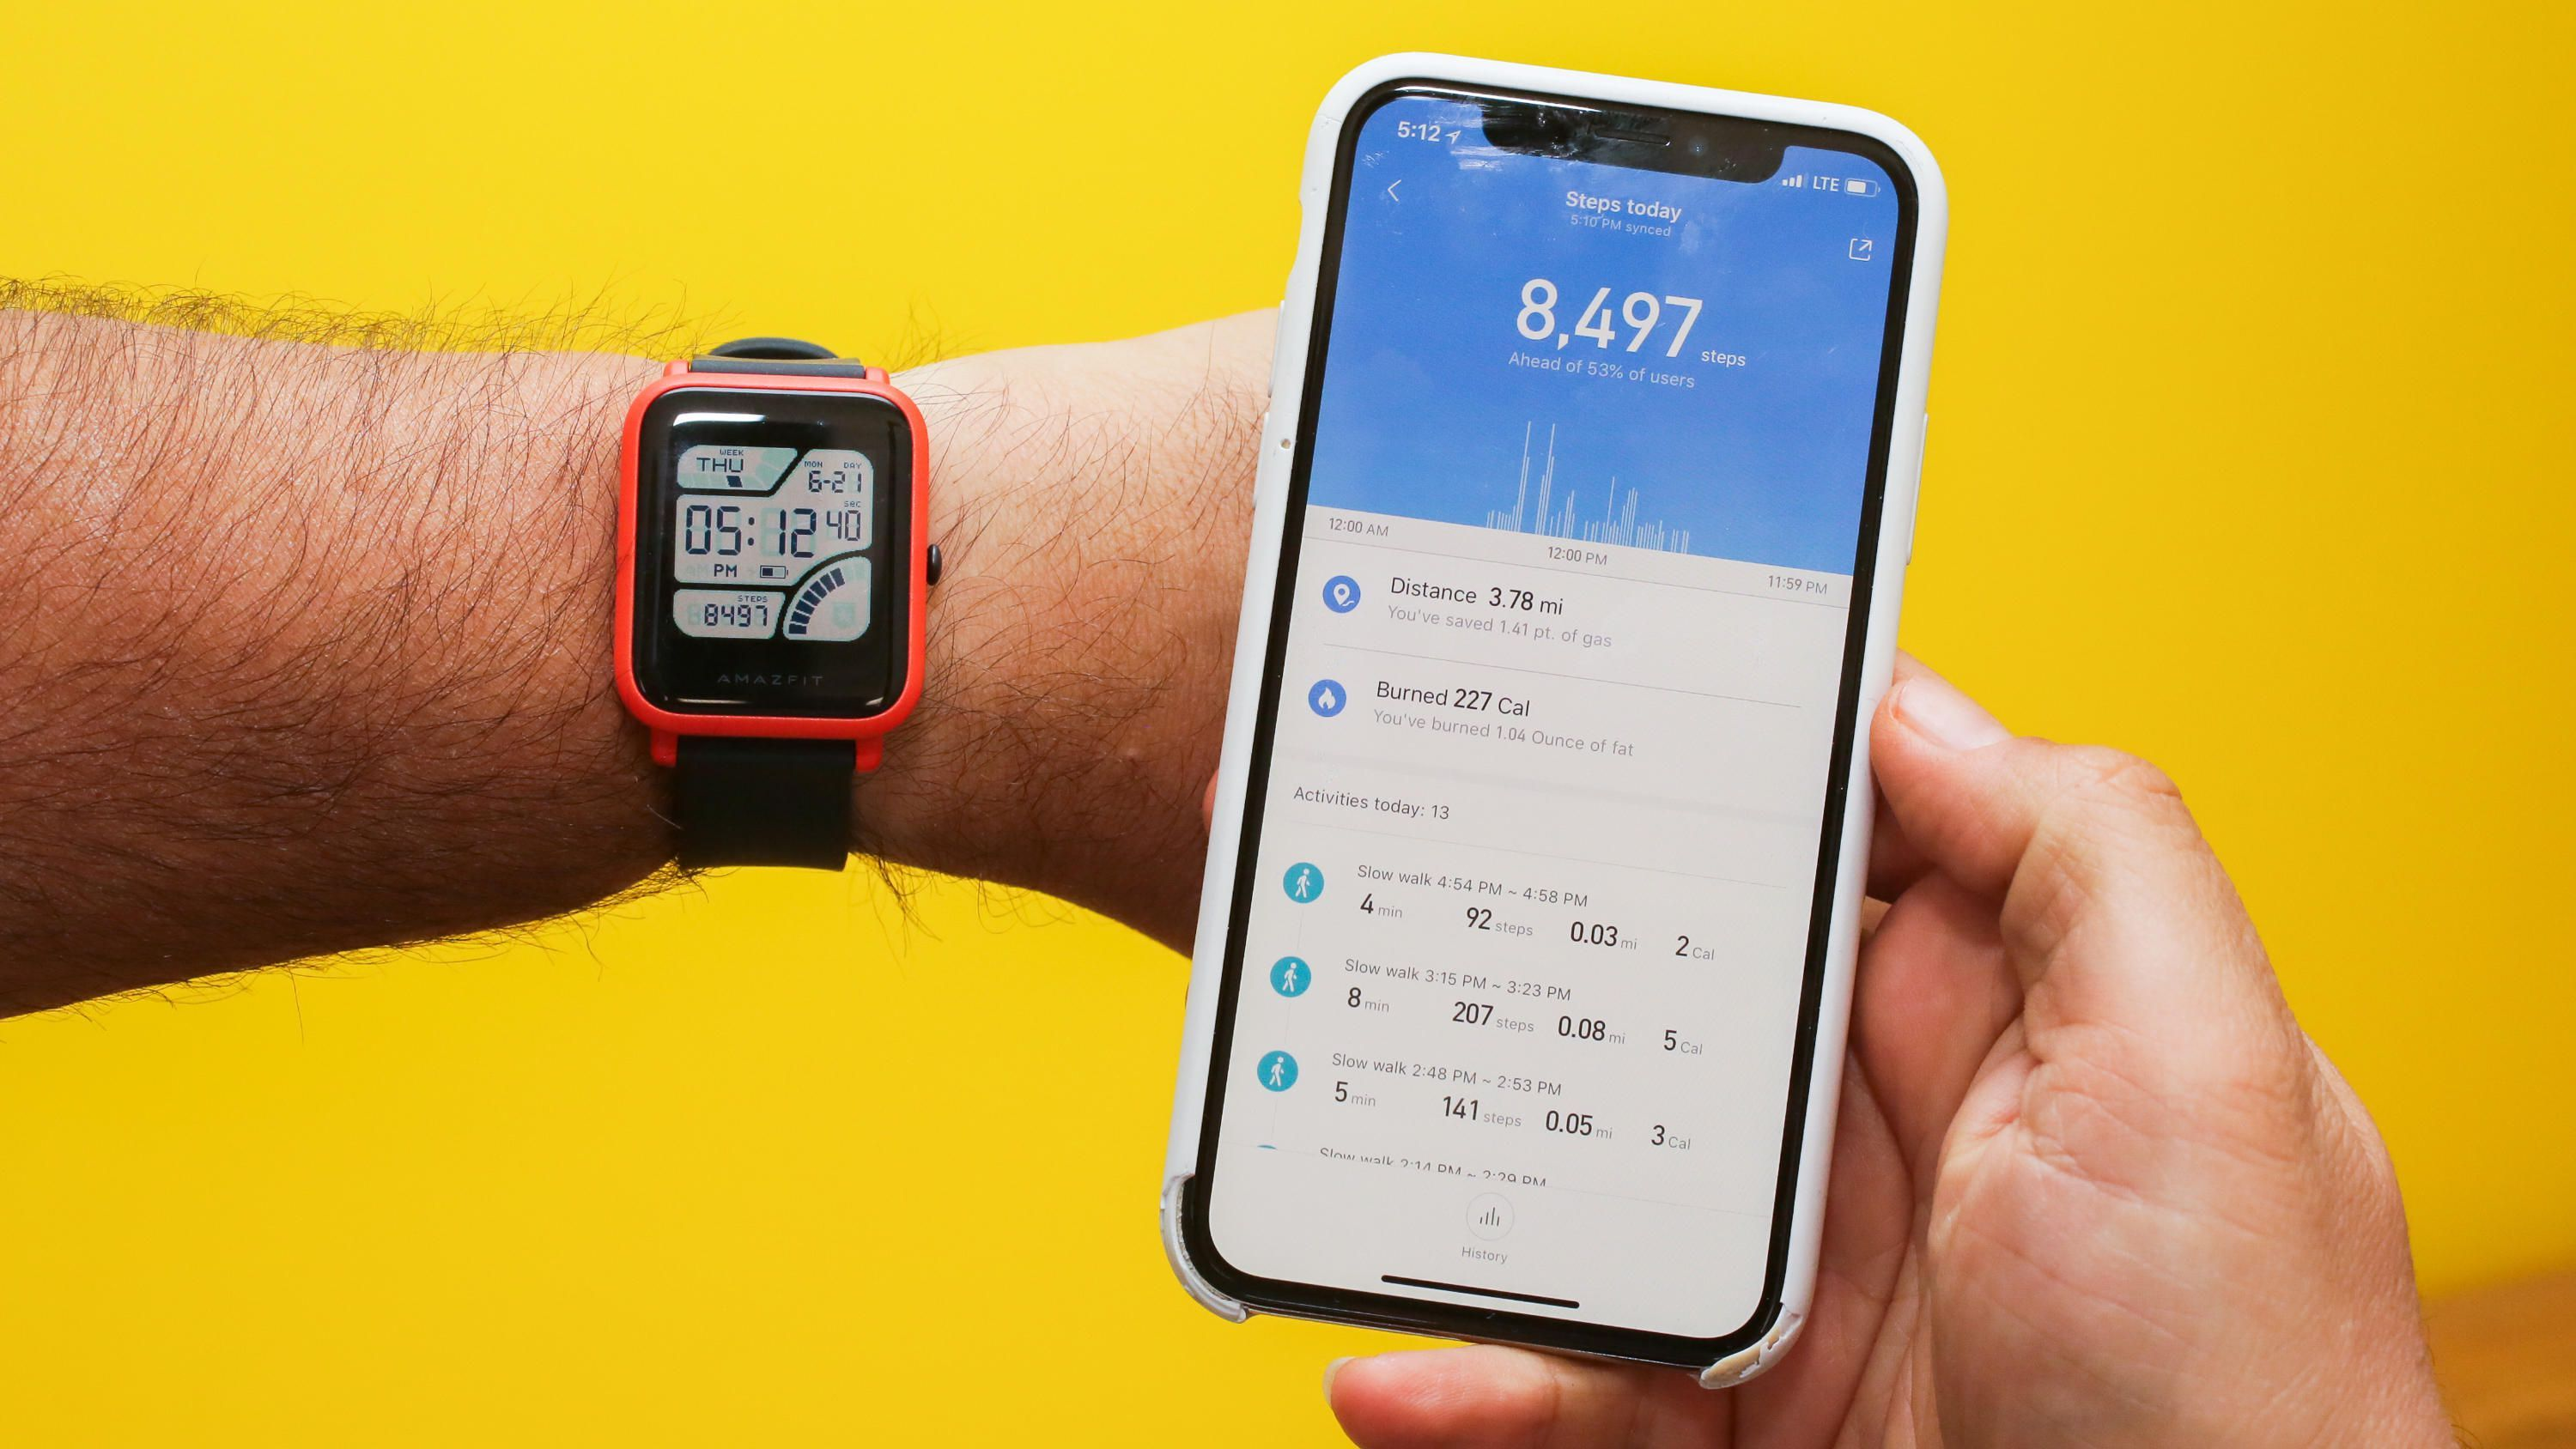 Jammer orintas contact info new orleans la | Amazfit Bip vs. Fitbit Versa: Which is more like Pebble? - Video